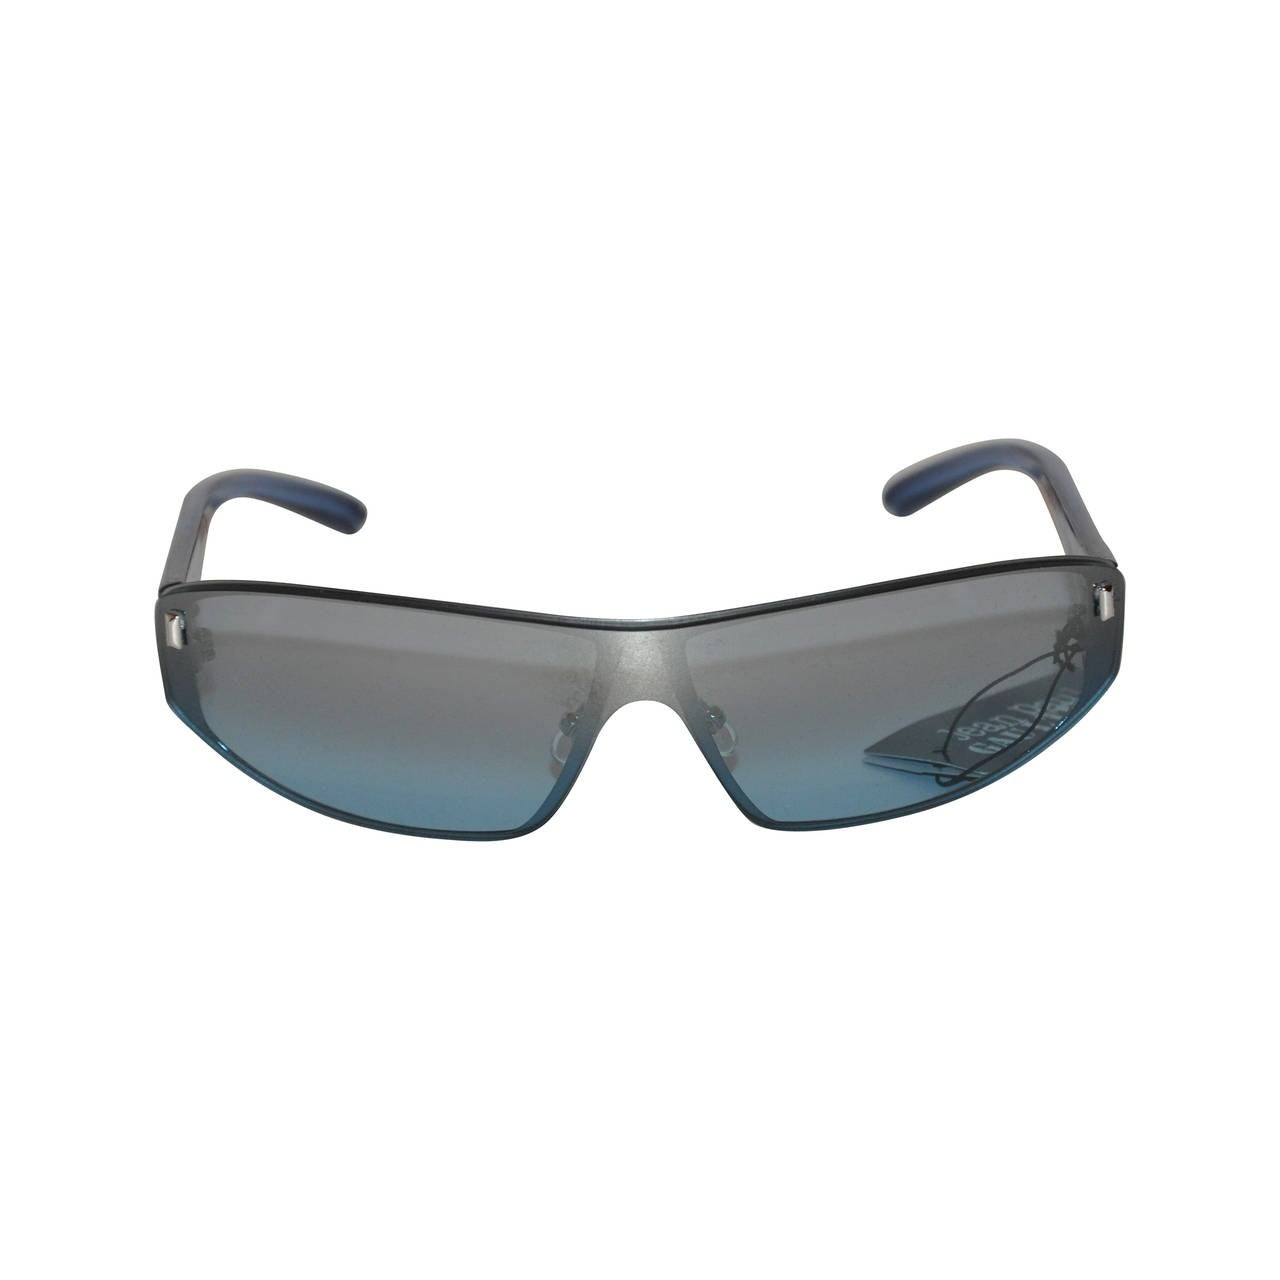 Jean Paul Gaultier Blue Lucite with Blue Shade Sunglasses